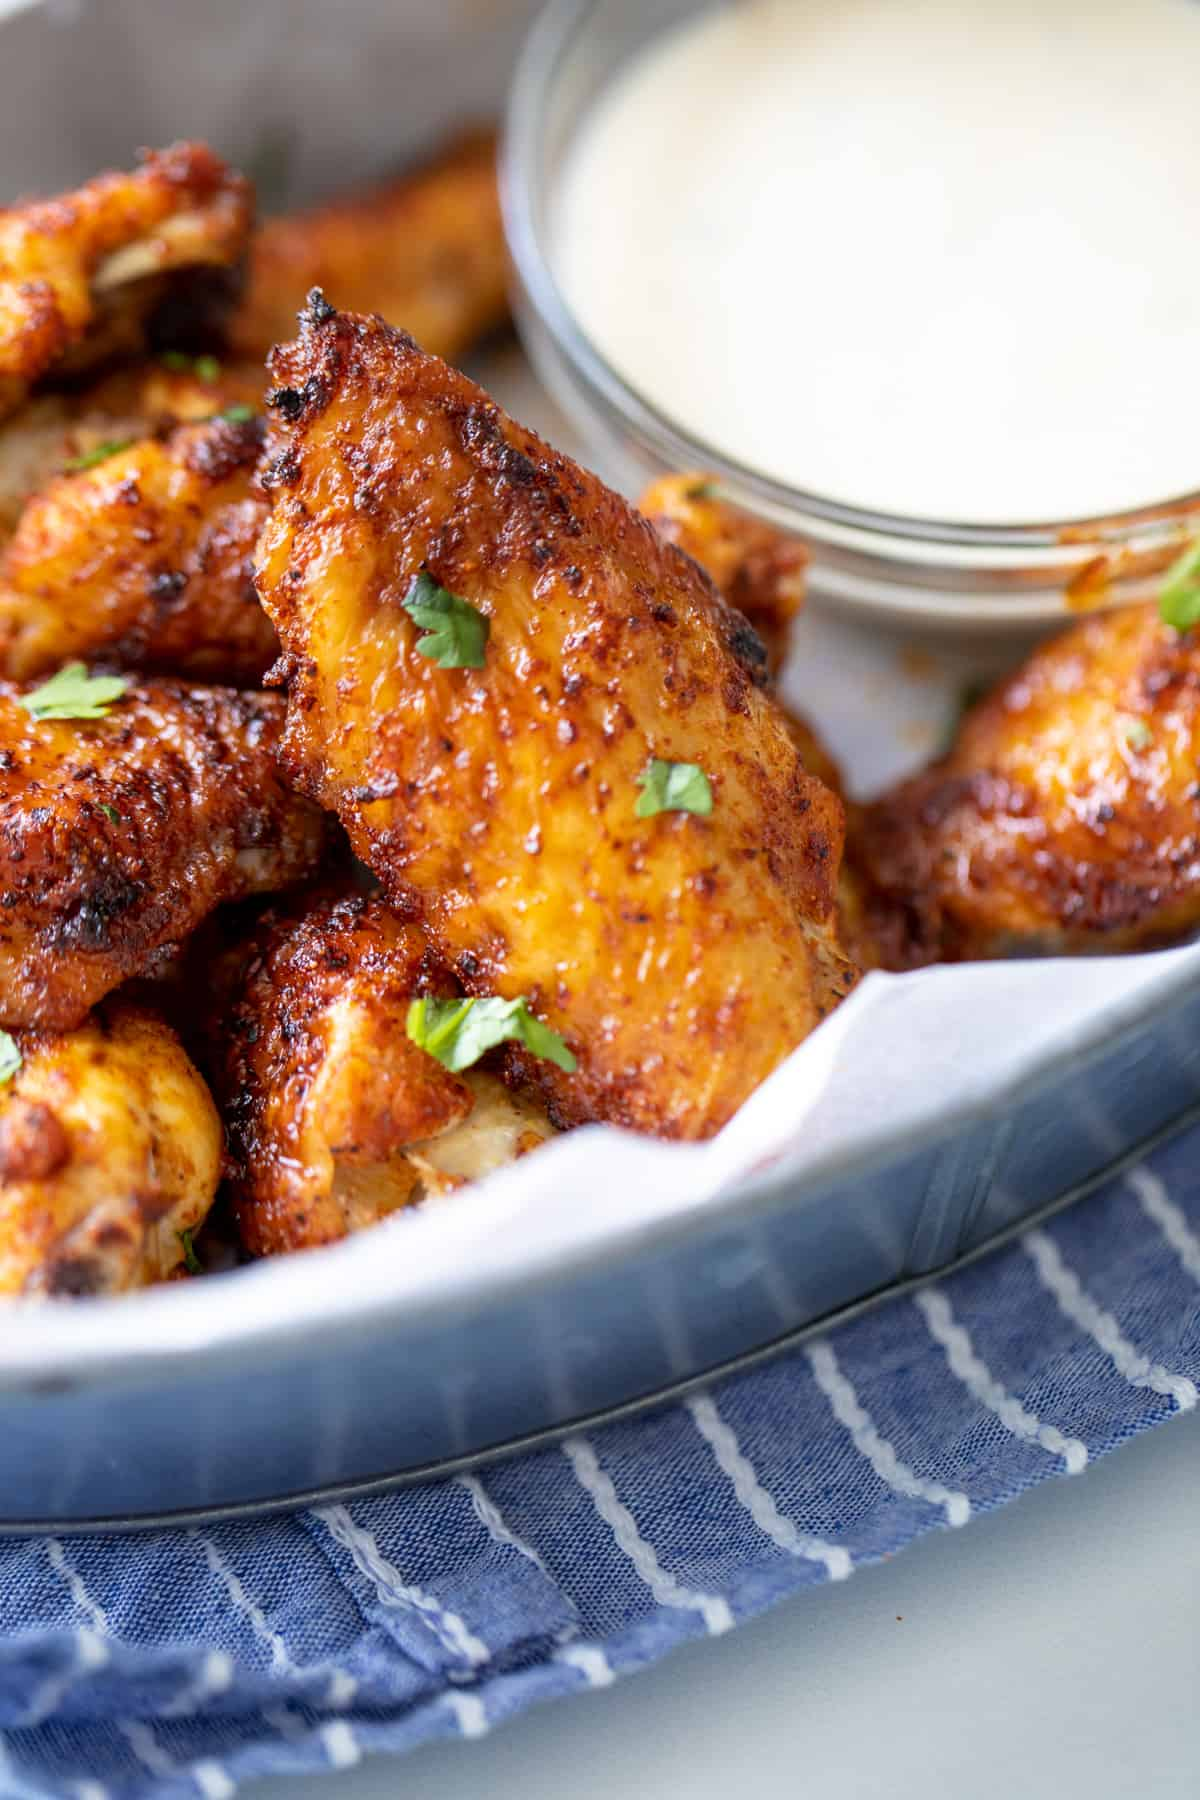 Close up of dry rubbed air fryer wings in a silver basket.